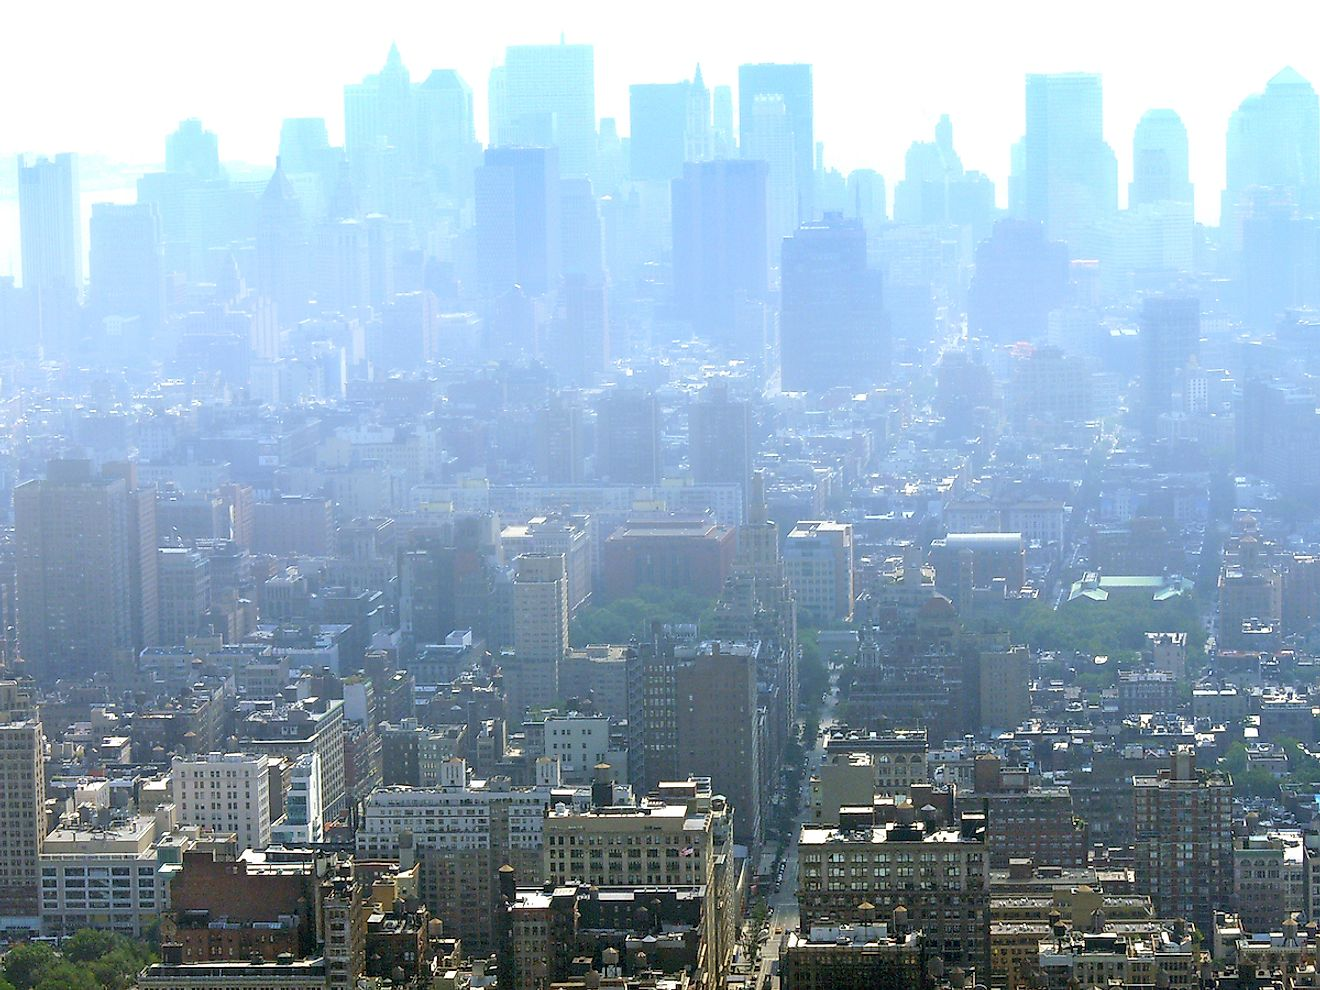 Manhattan's skyscrapers disappearing in the distance under a heavy blanket of smog and haze due to pollution. Image credit: KishoreJ/Shutterstock.com